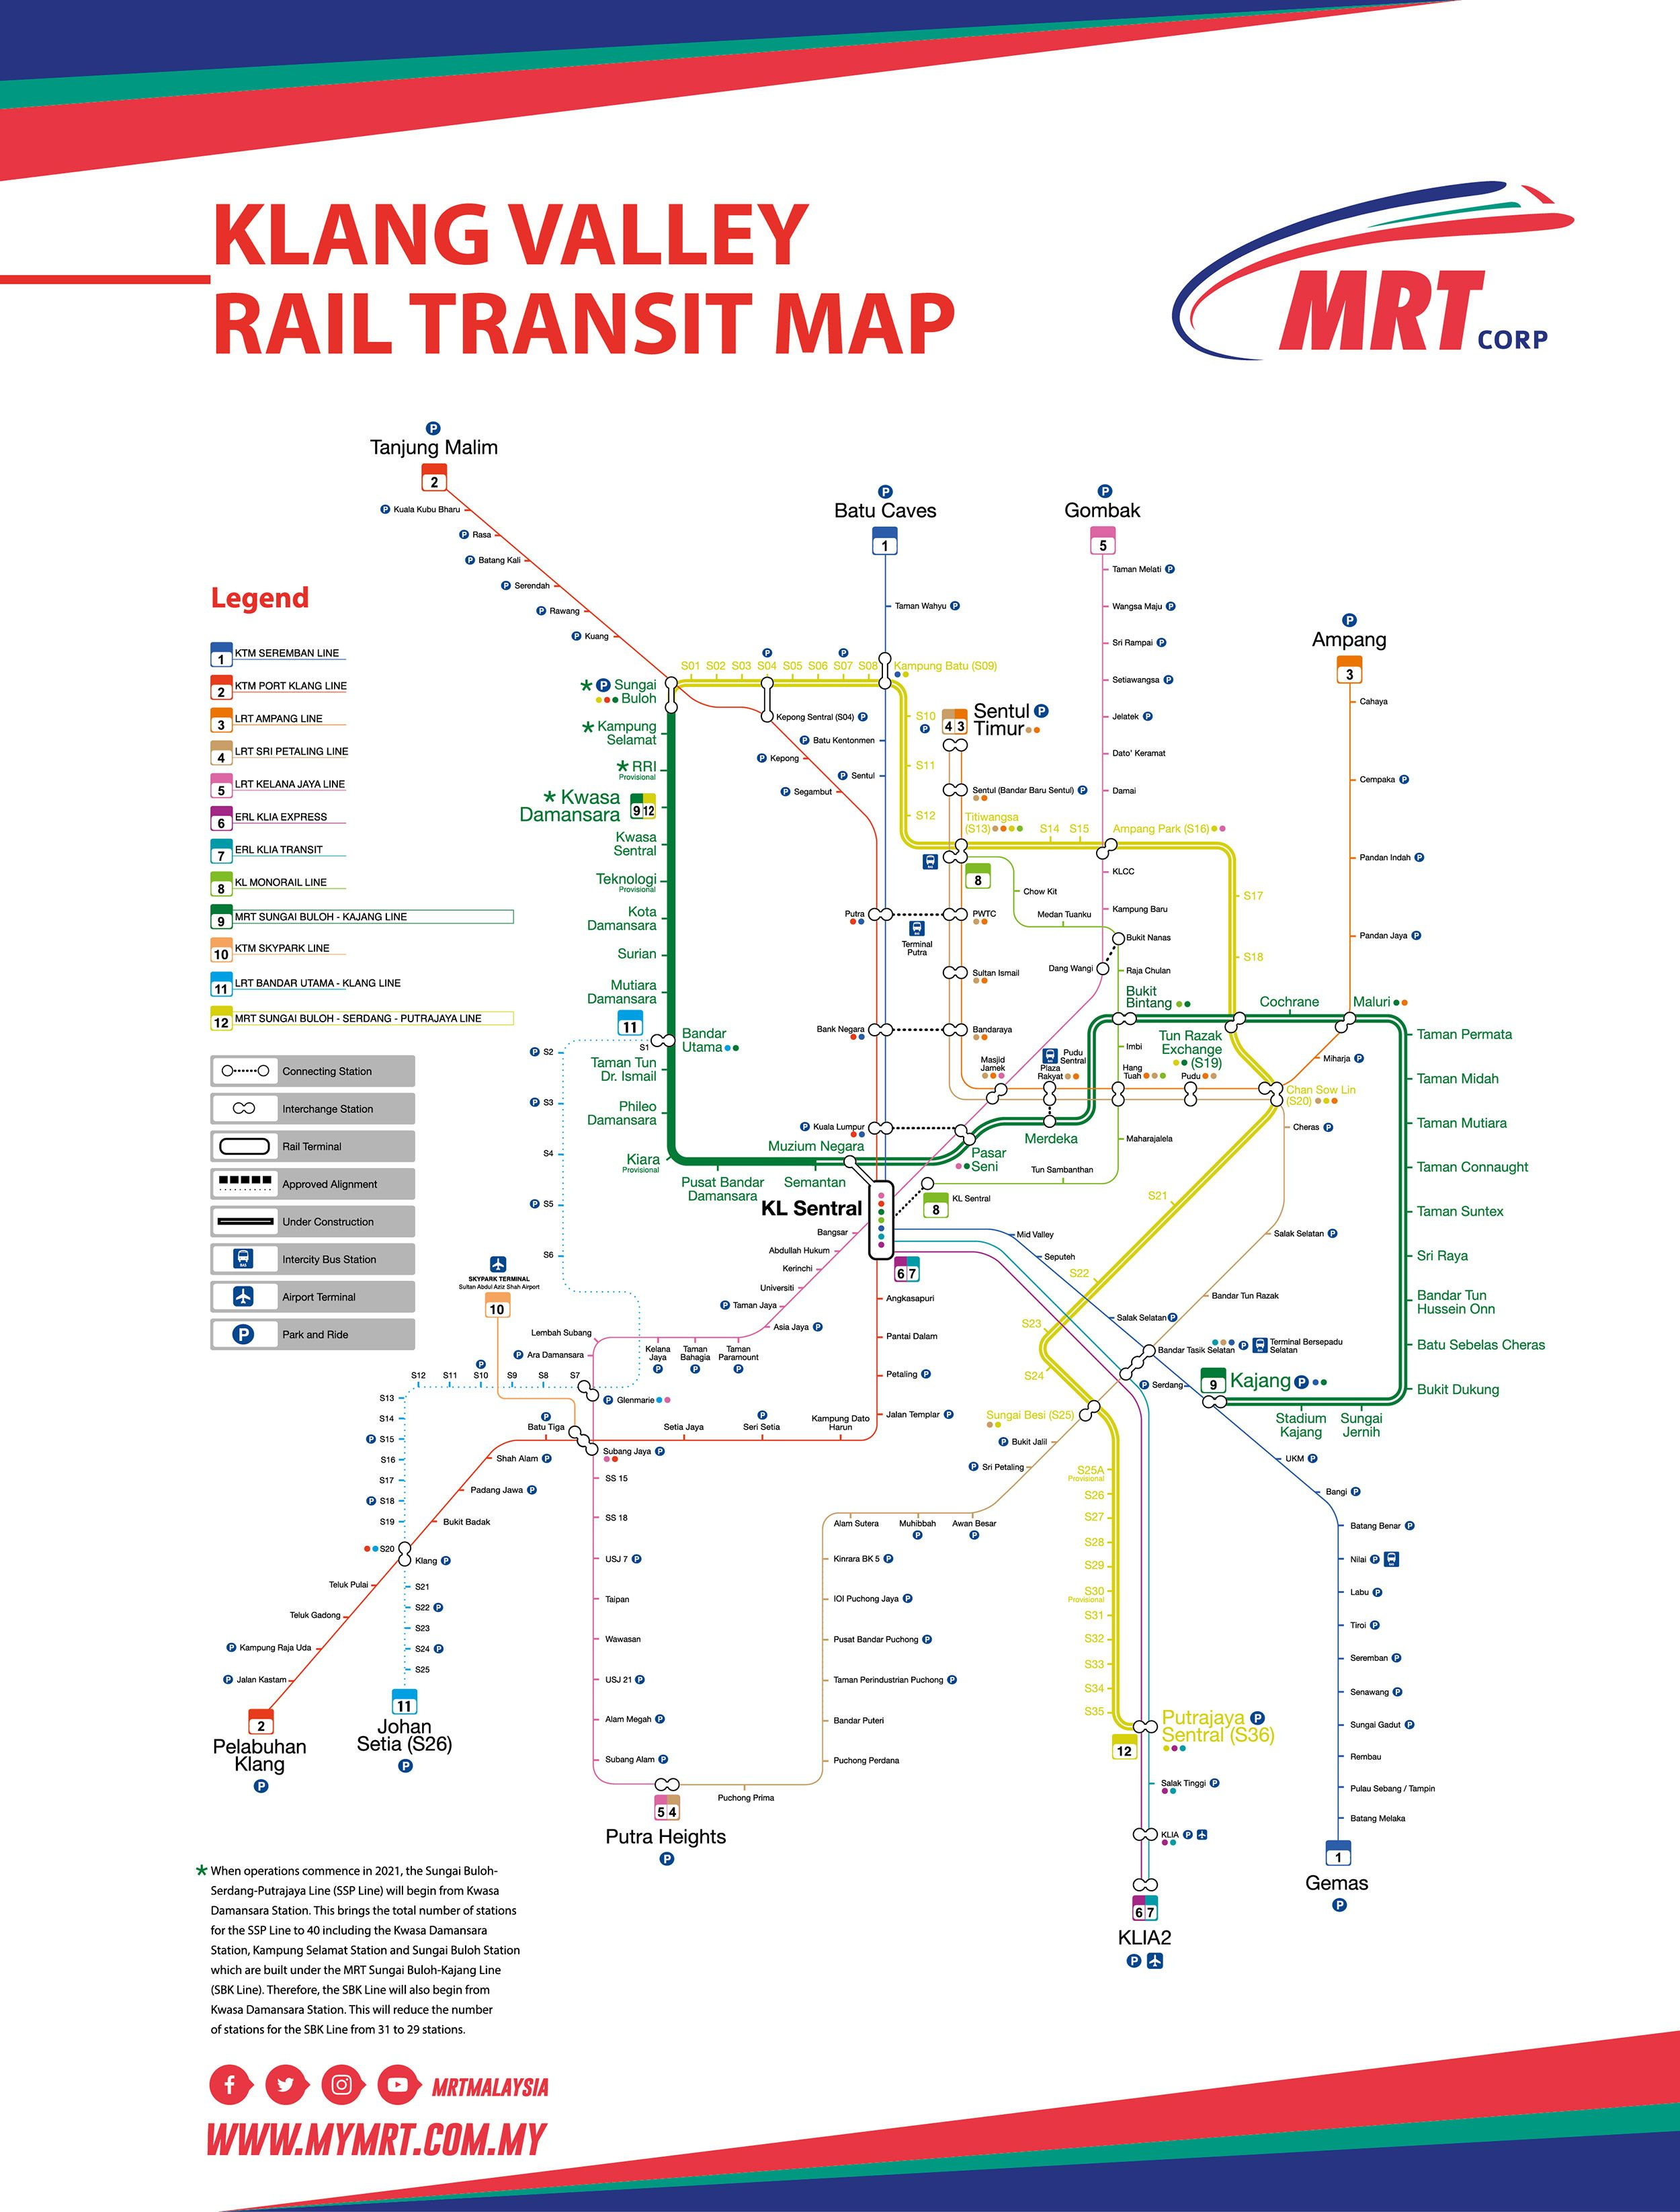 KLANG VALLEY RAIL TRANSIT MAP Malaysia Public Transport Network